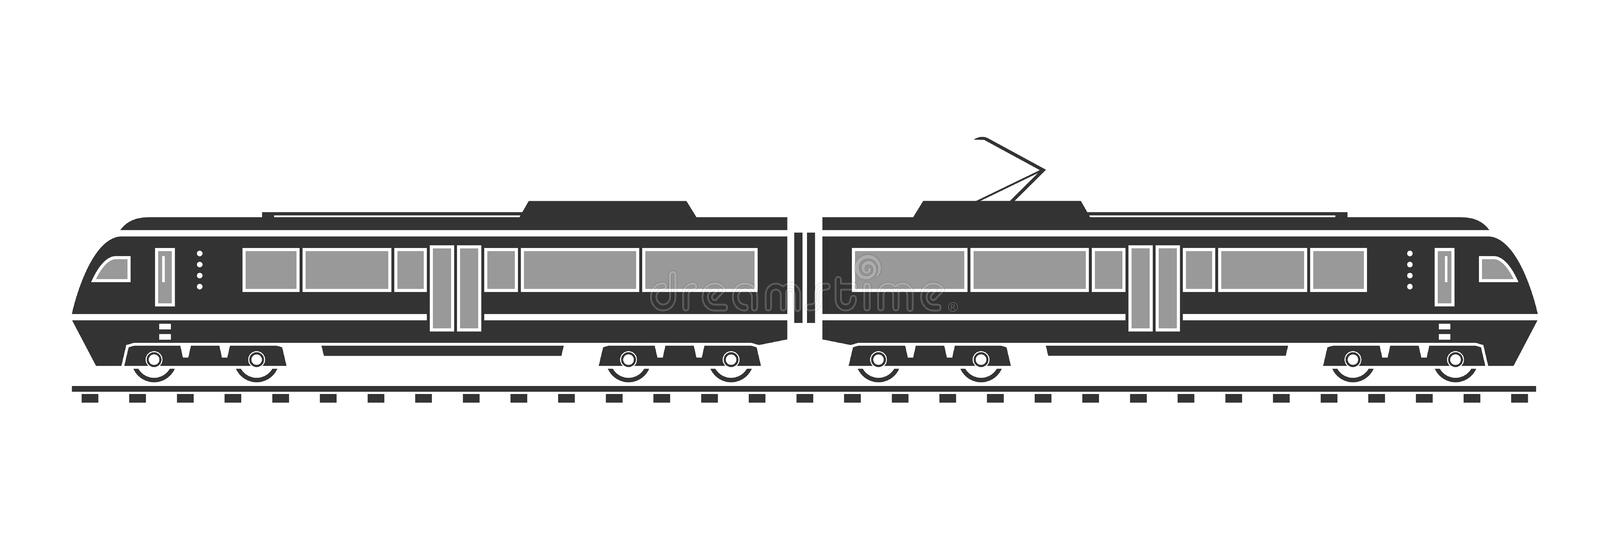 Silhouette de train électrique illustration libre de droits